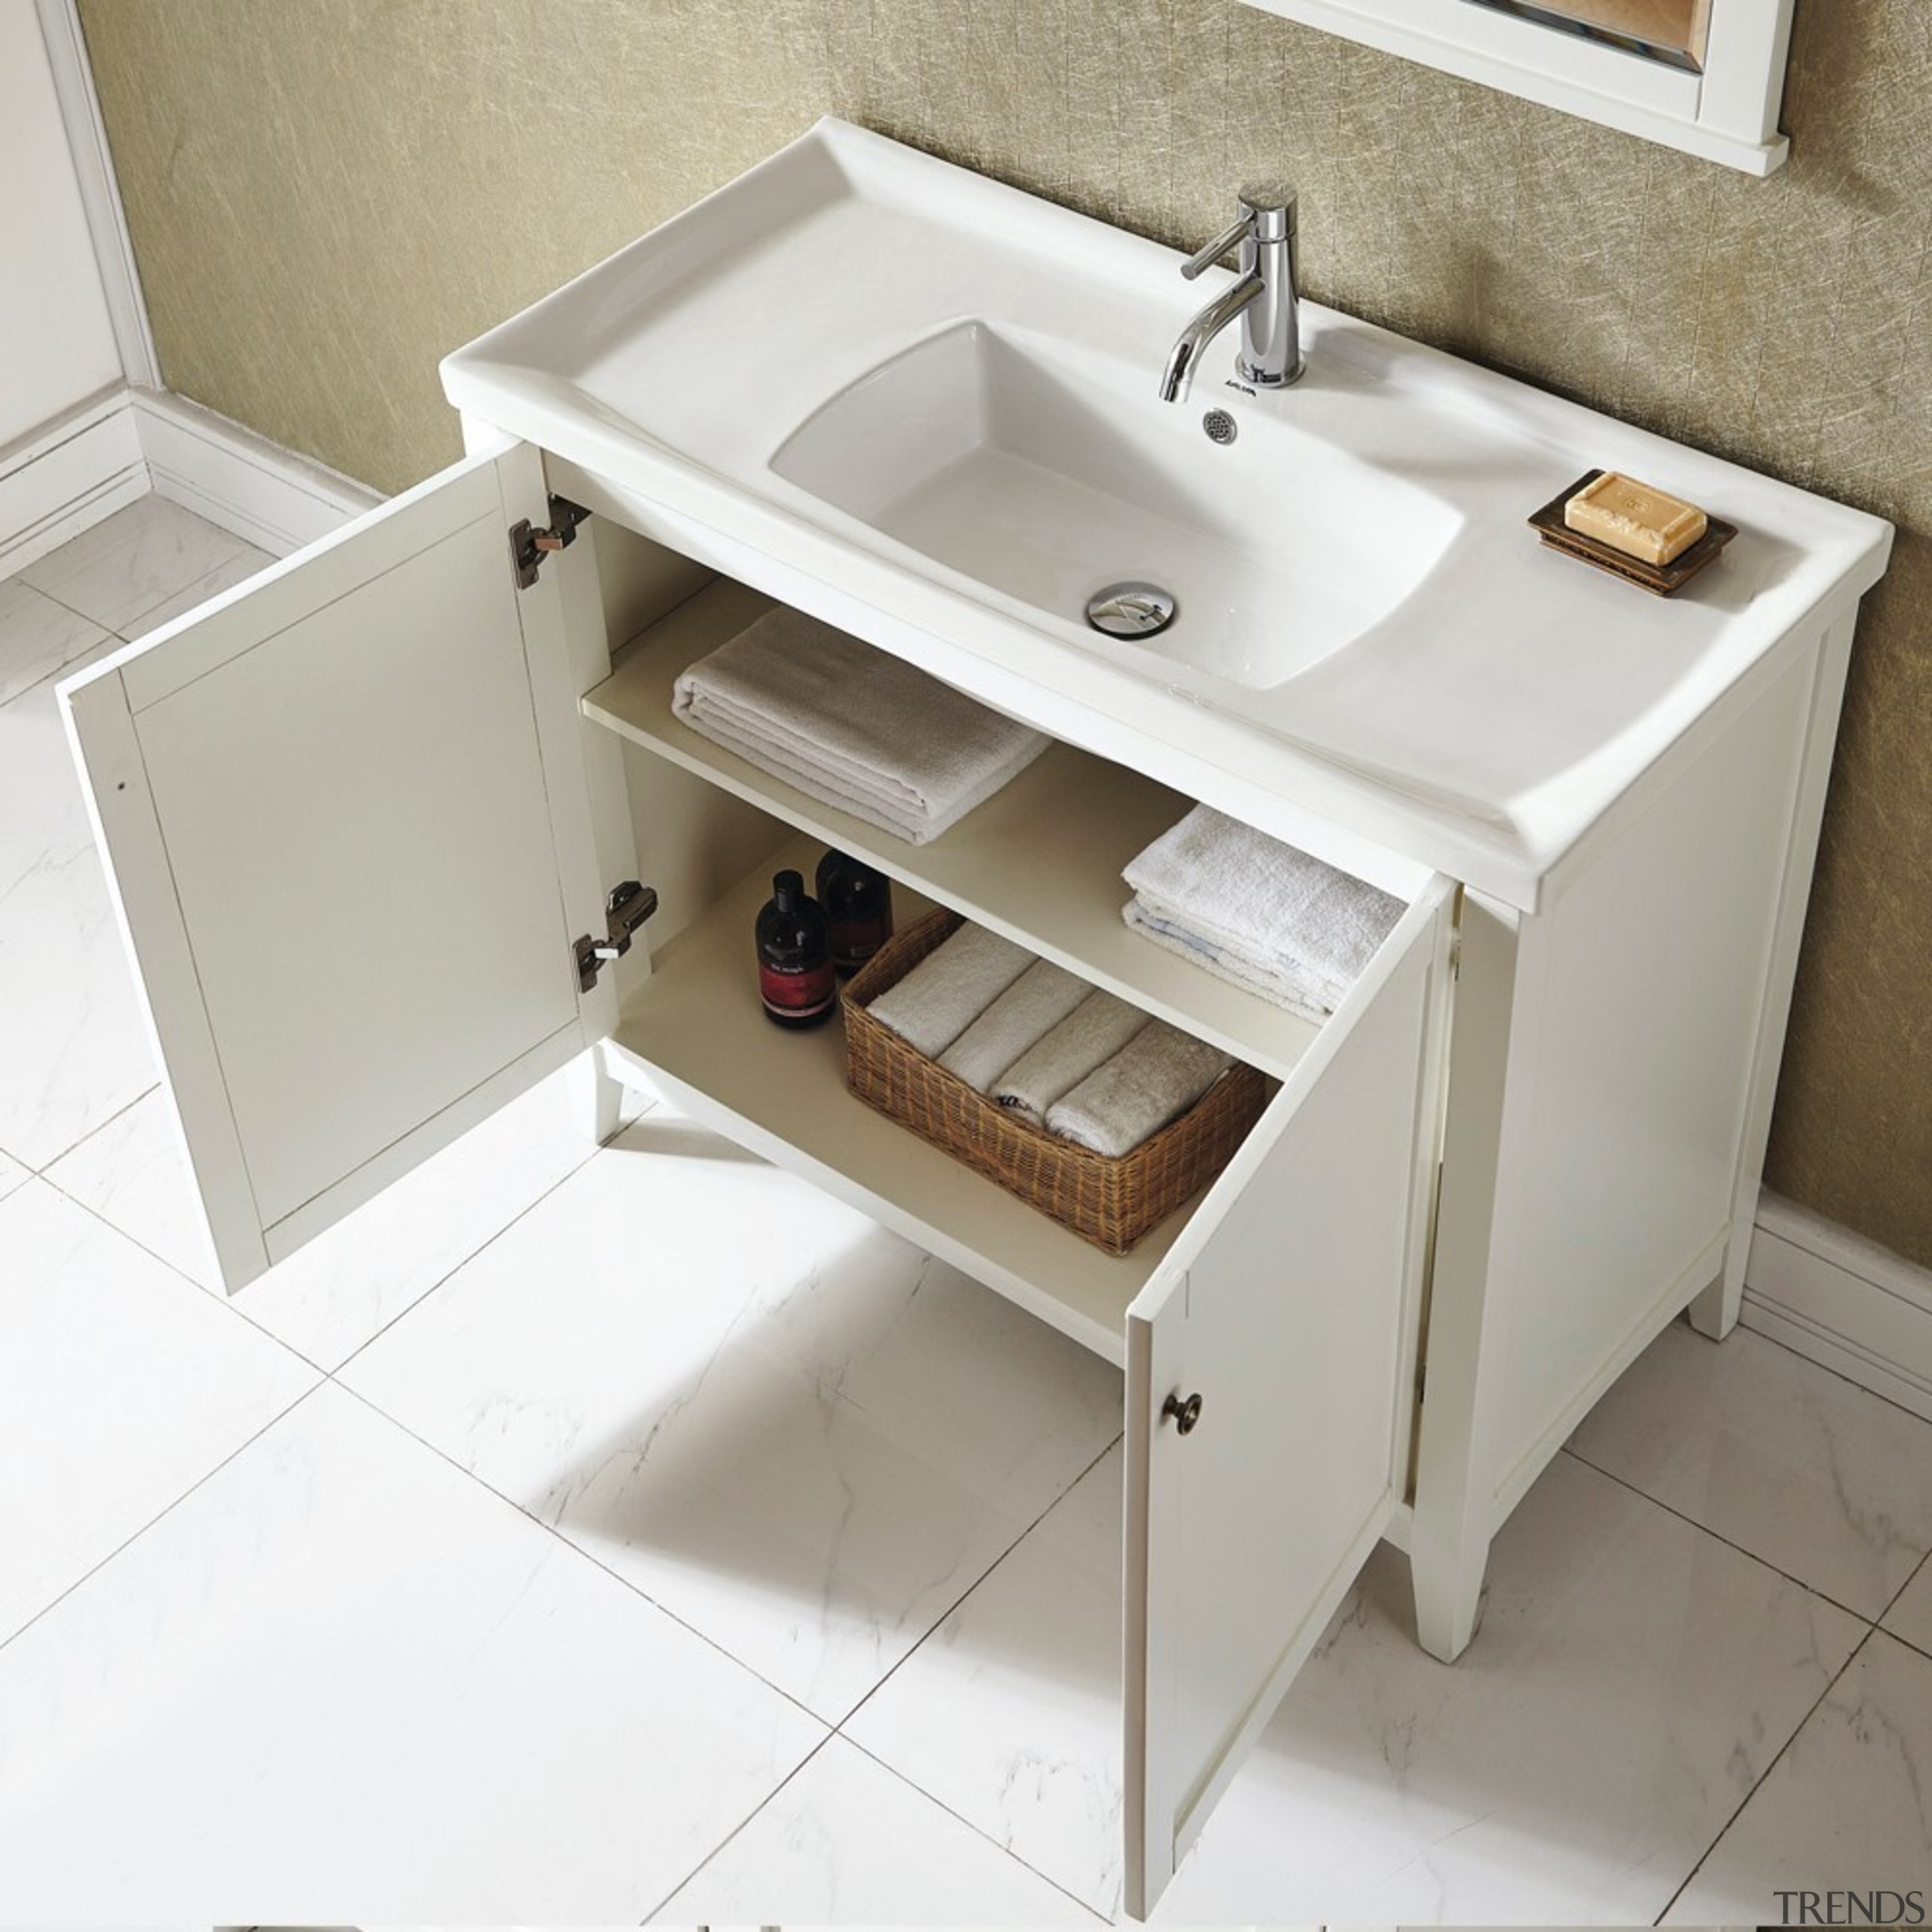 Trenz Bathroom was initially founded in 2003 in bathroom, bathroom accessory, bathroom cabinet, bathroom sink, furniture, plumbing fixture, product, sink, tap, gray, white